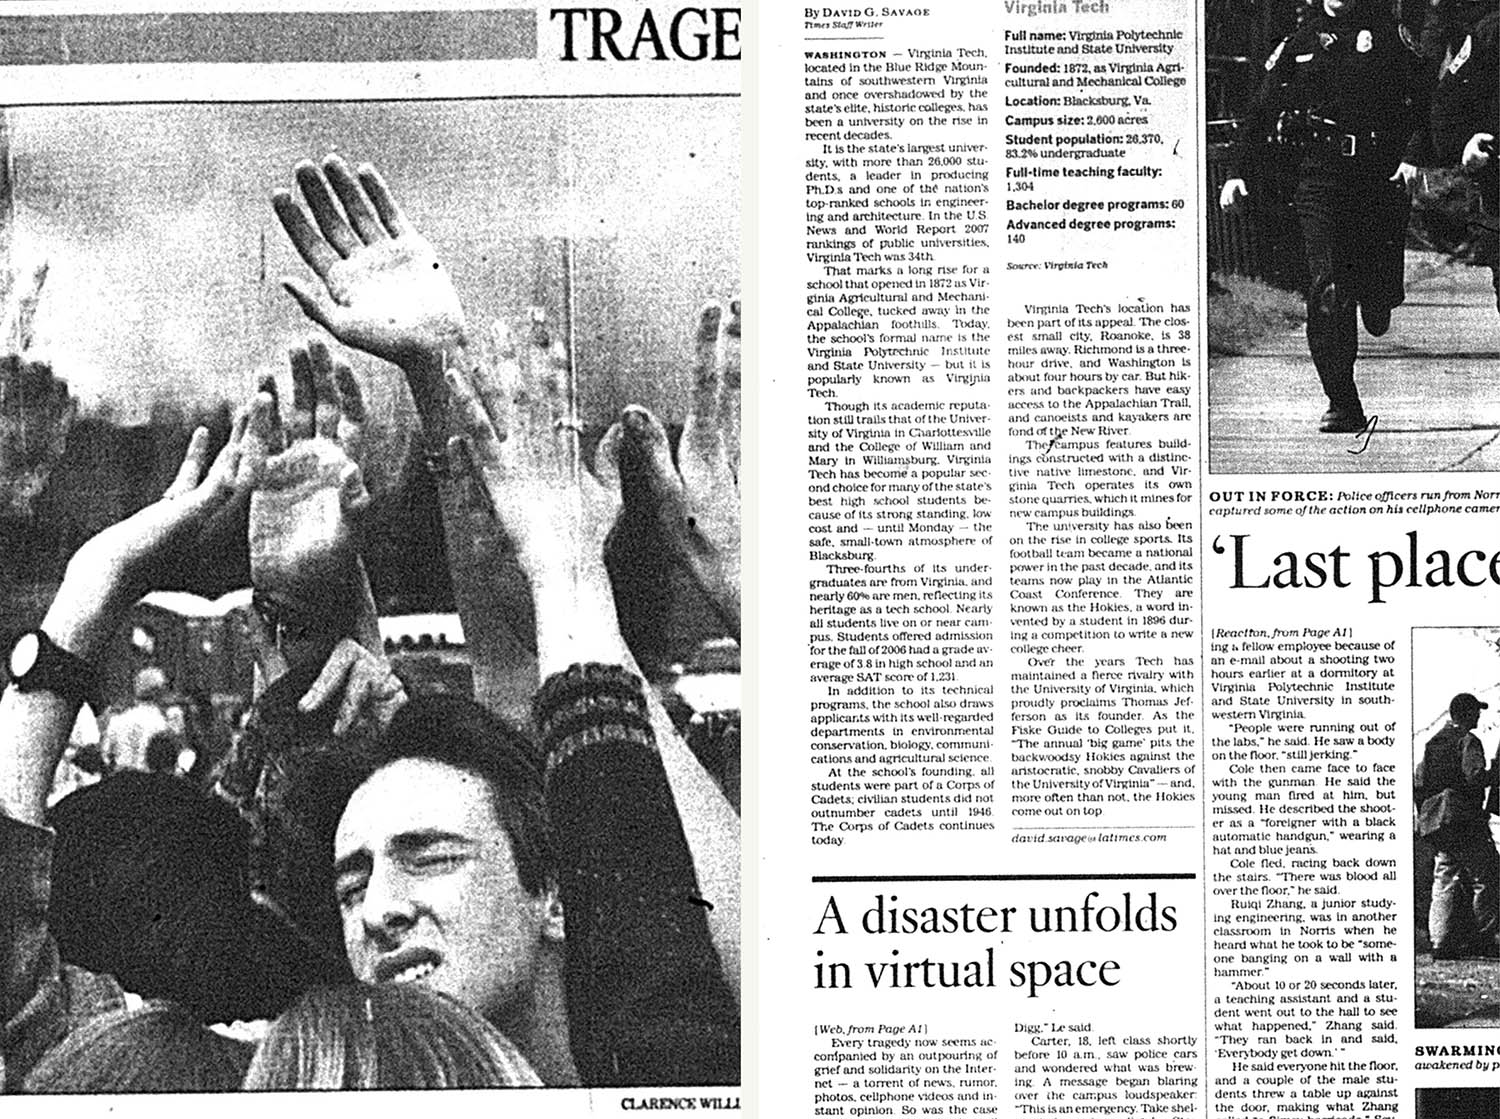 (L): The <i>Los Angeles Times</i>, April 22, 1999. (R): The <i>Los Angeles Times</i>, April 17, 2007.